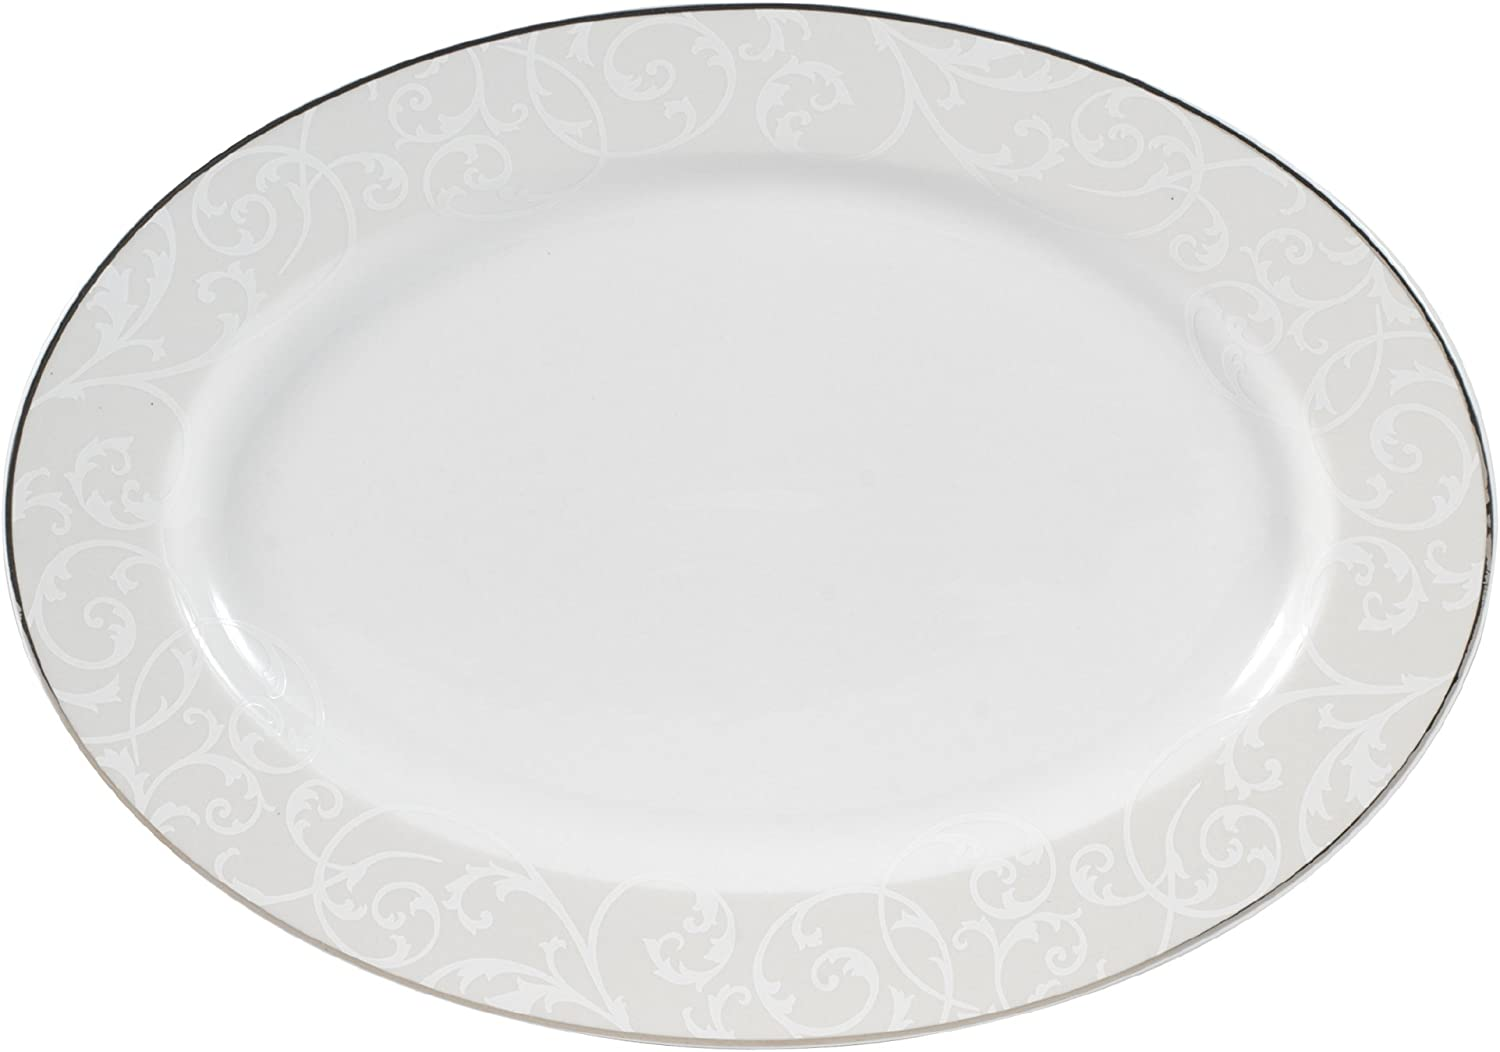 Mikasa Parchment Modern Oval Serving Platter,14-Inch